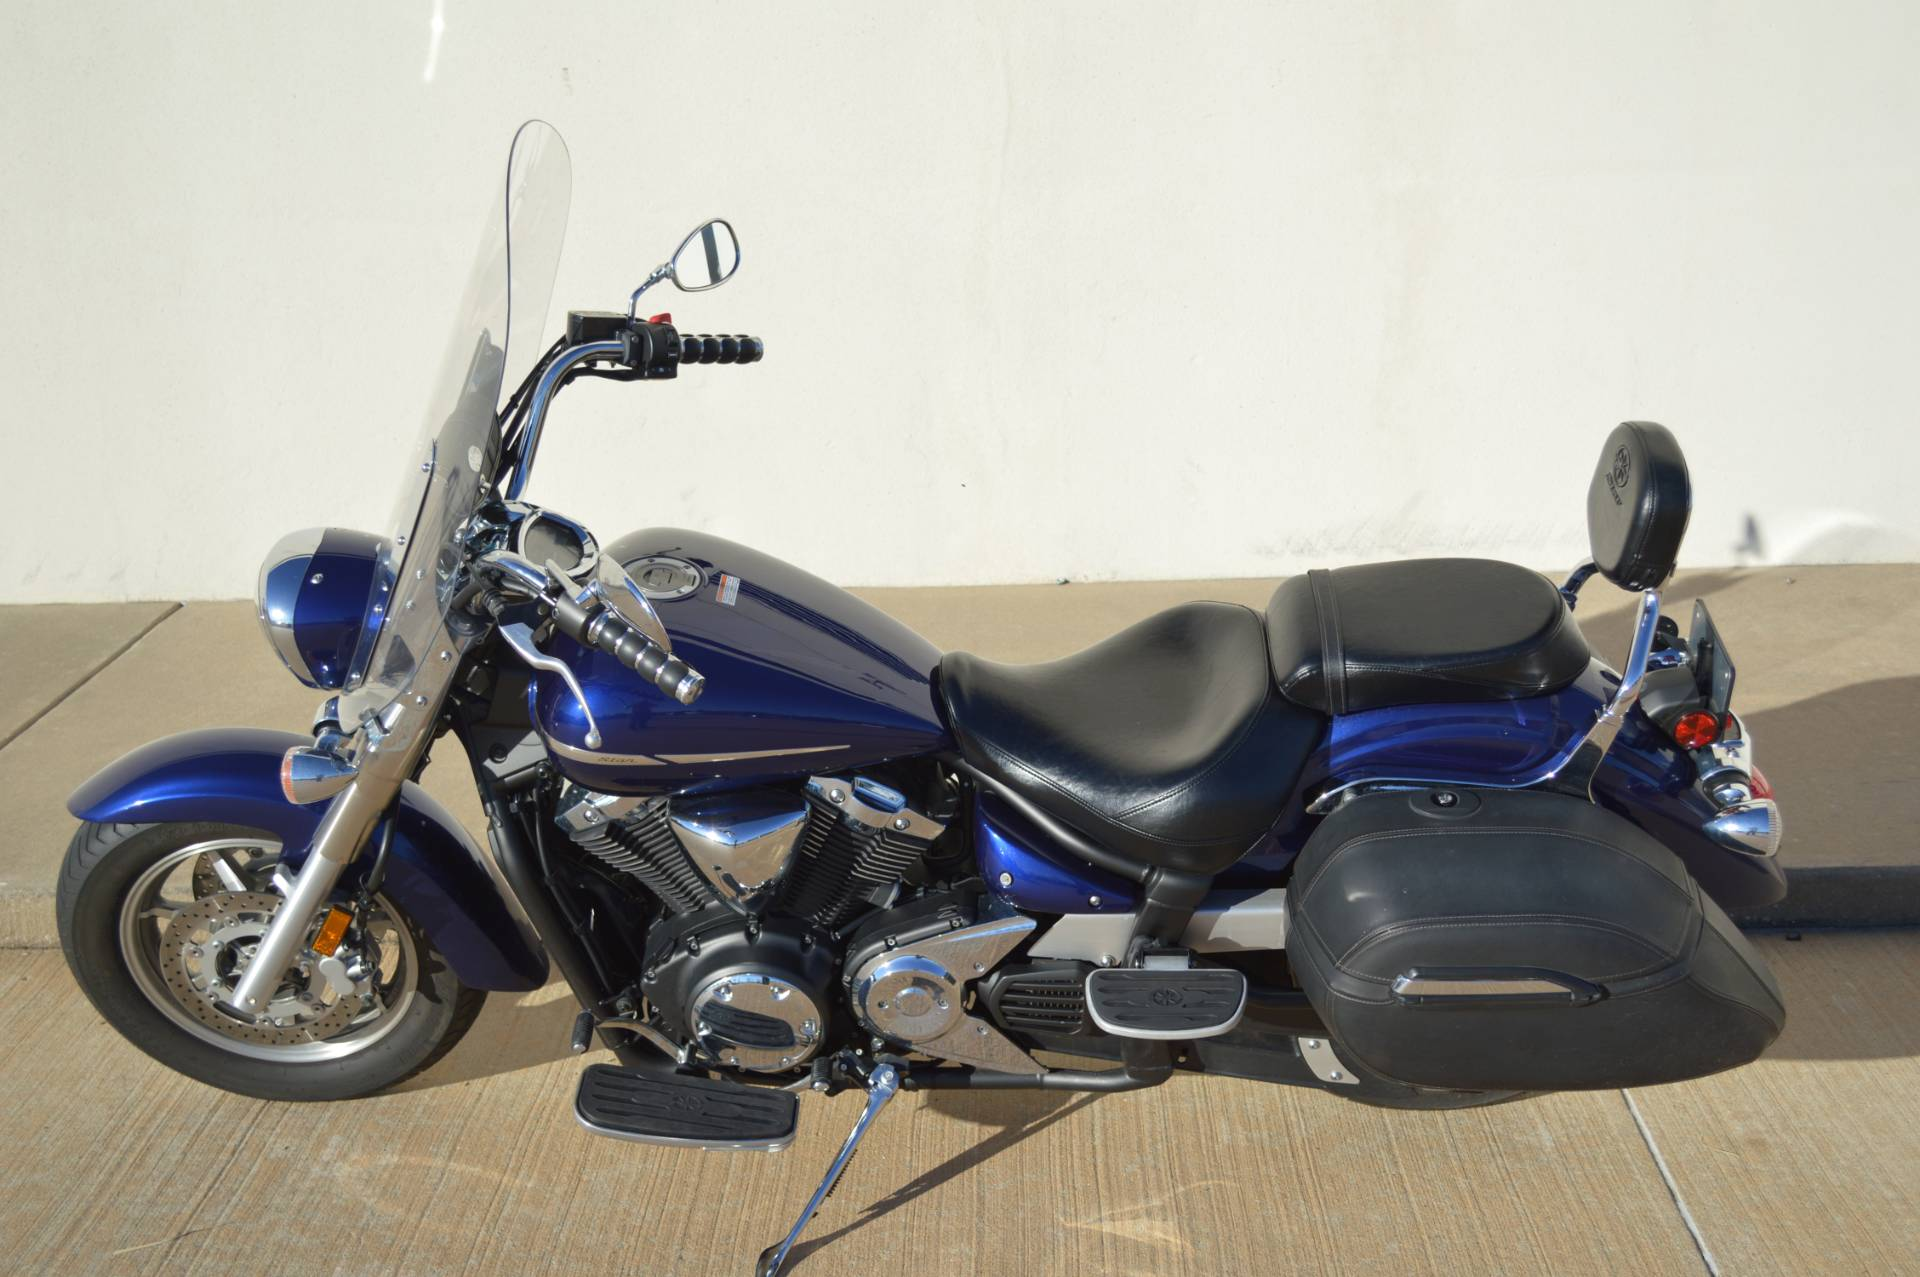 2007 yamaha v star 1300 motorcycles shawnee oklahoma for Yamaha motorcycles okc